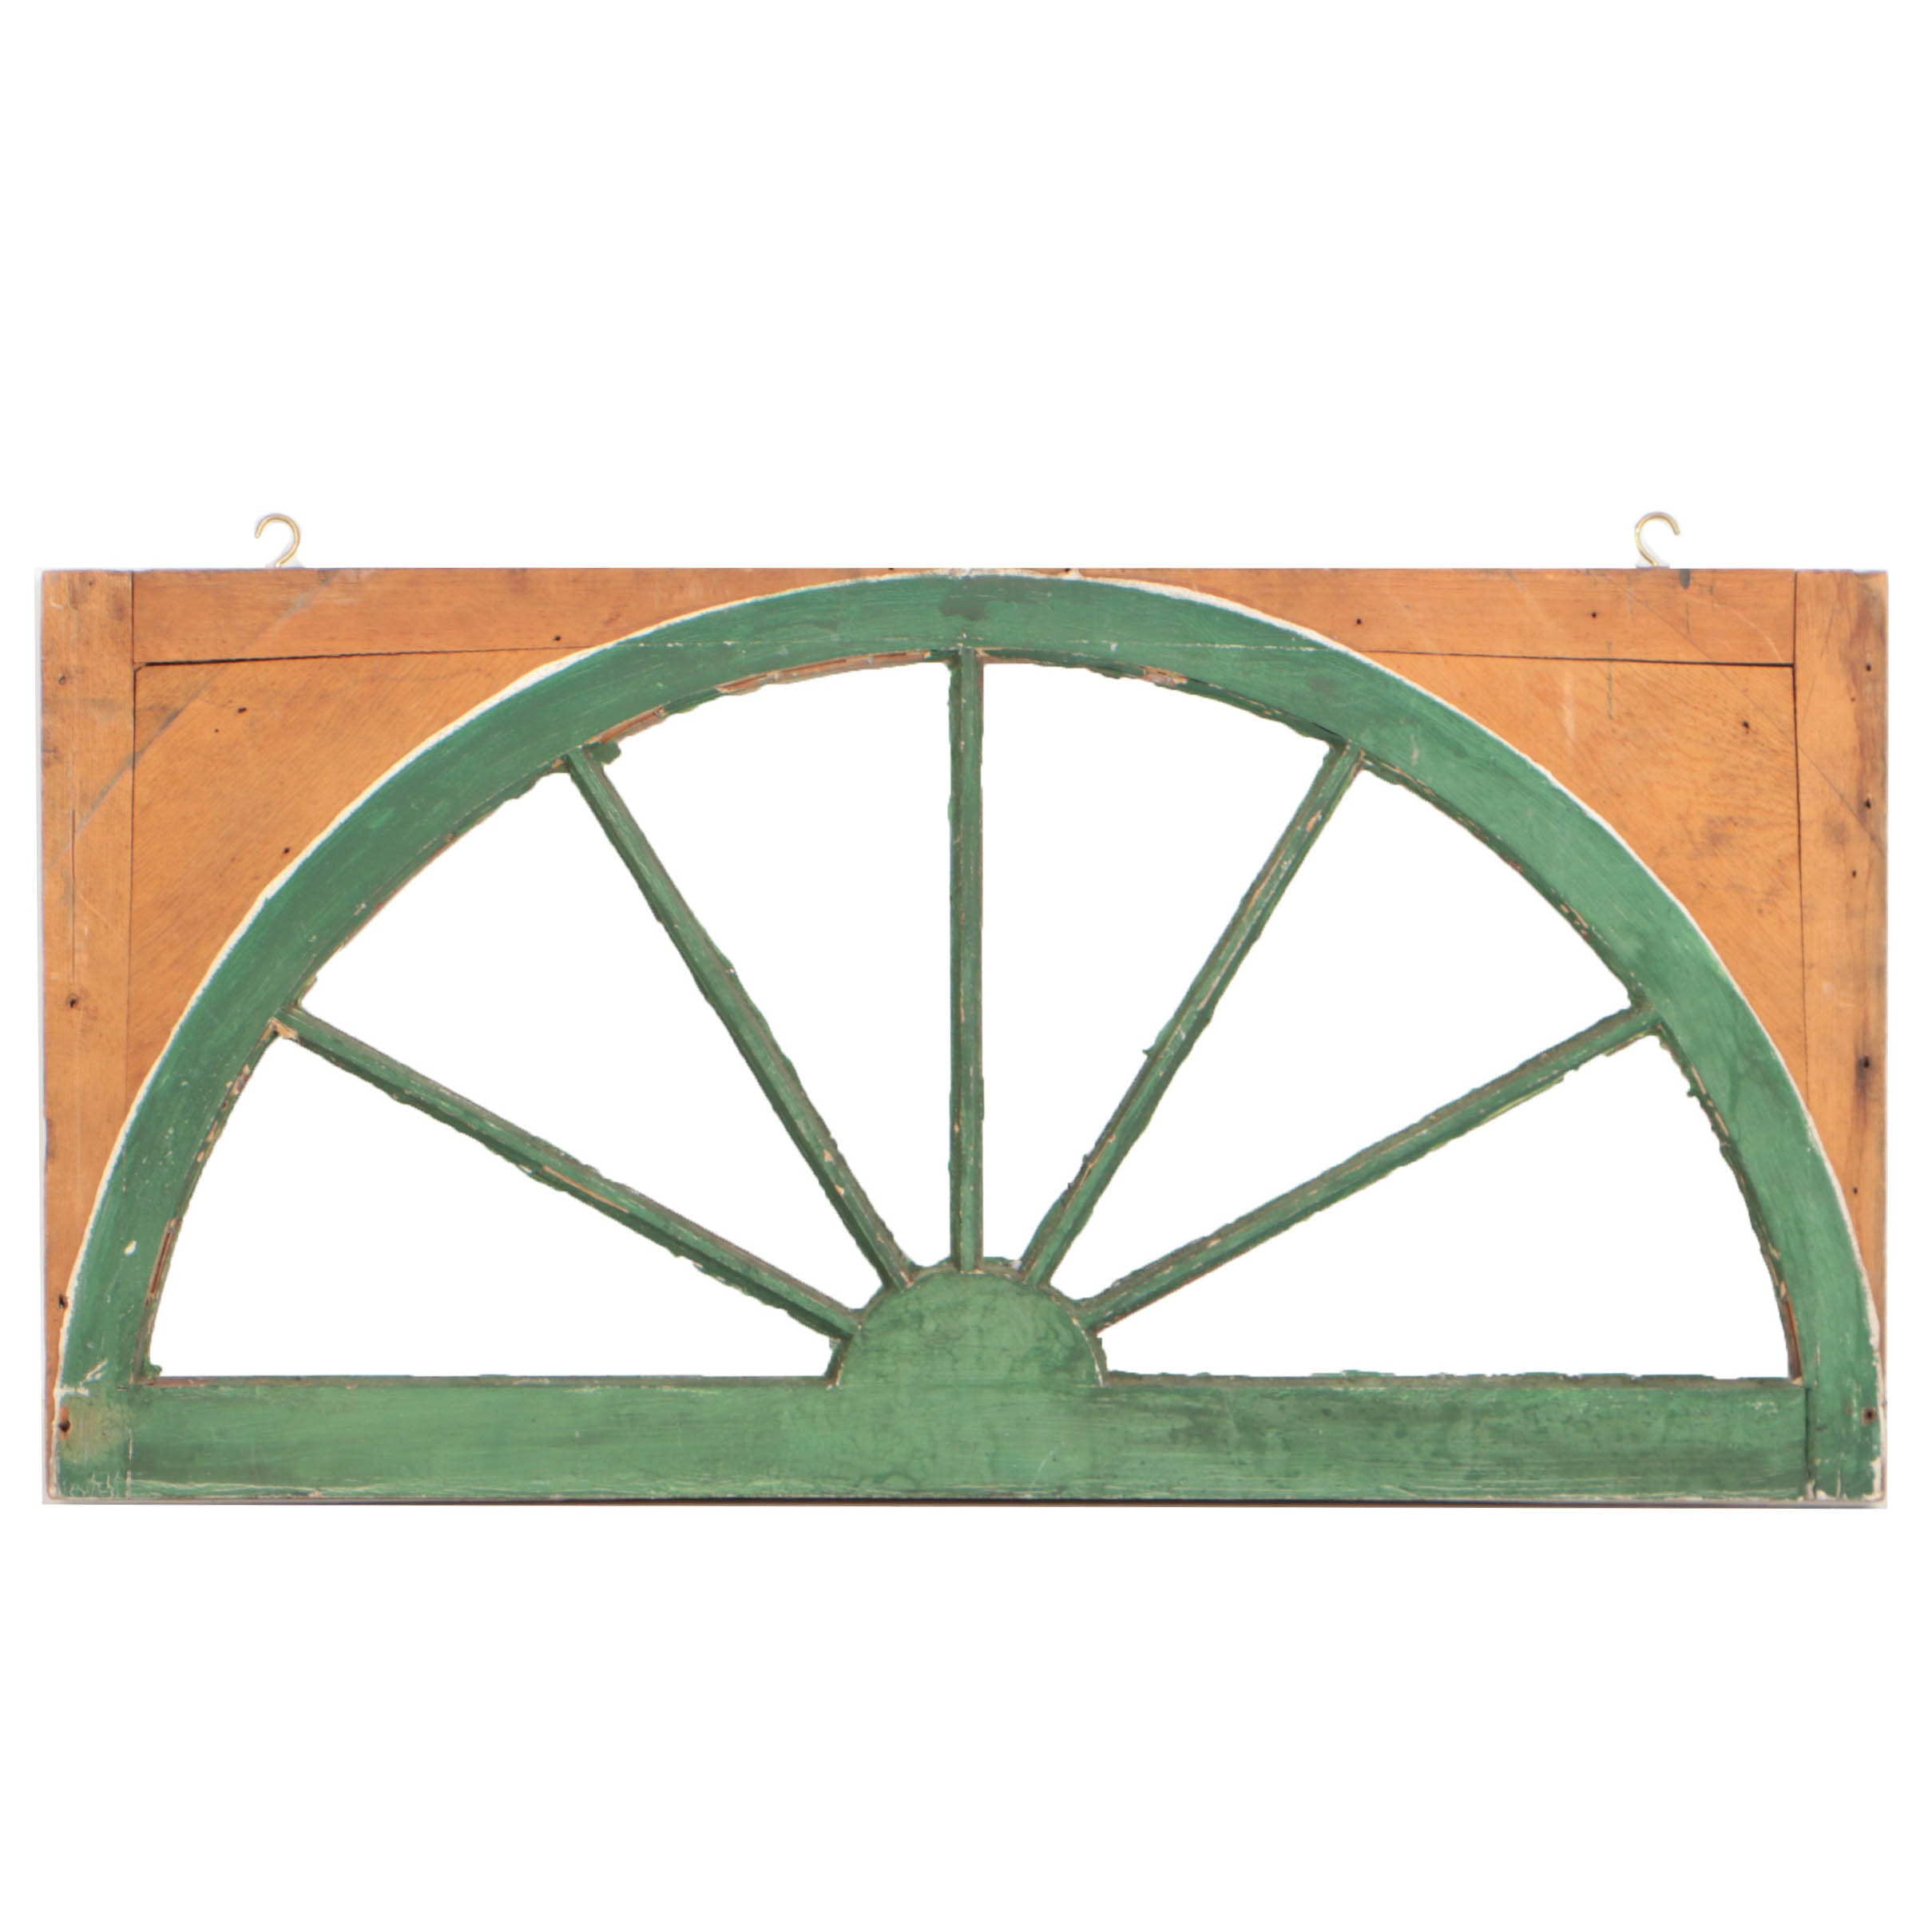 Green Painted Pine Sunburst Transom Window, 20th Century